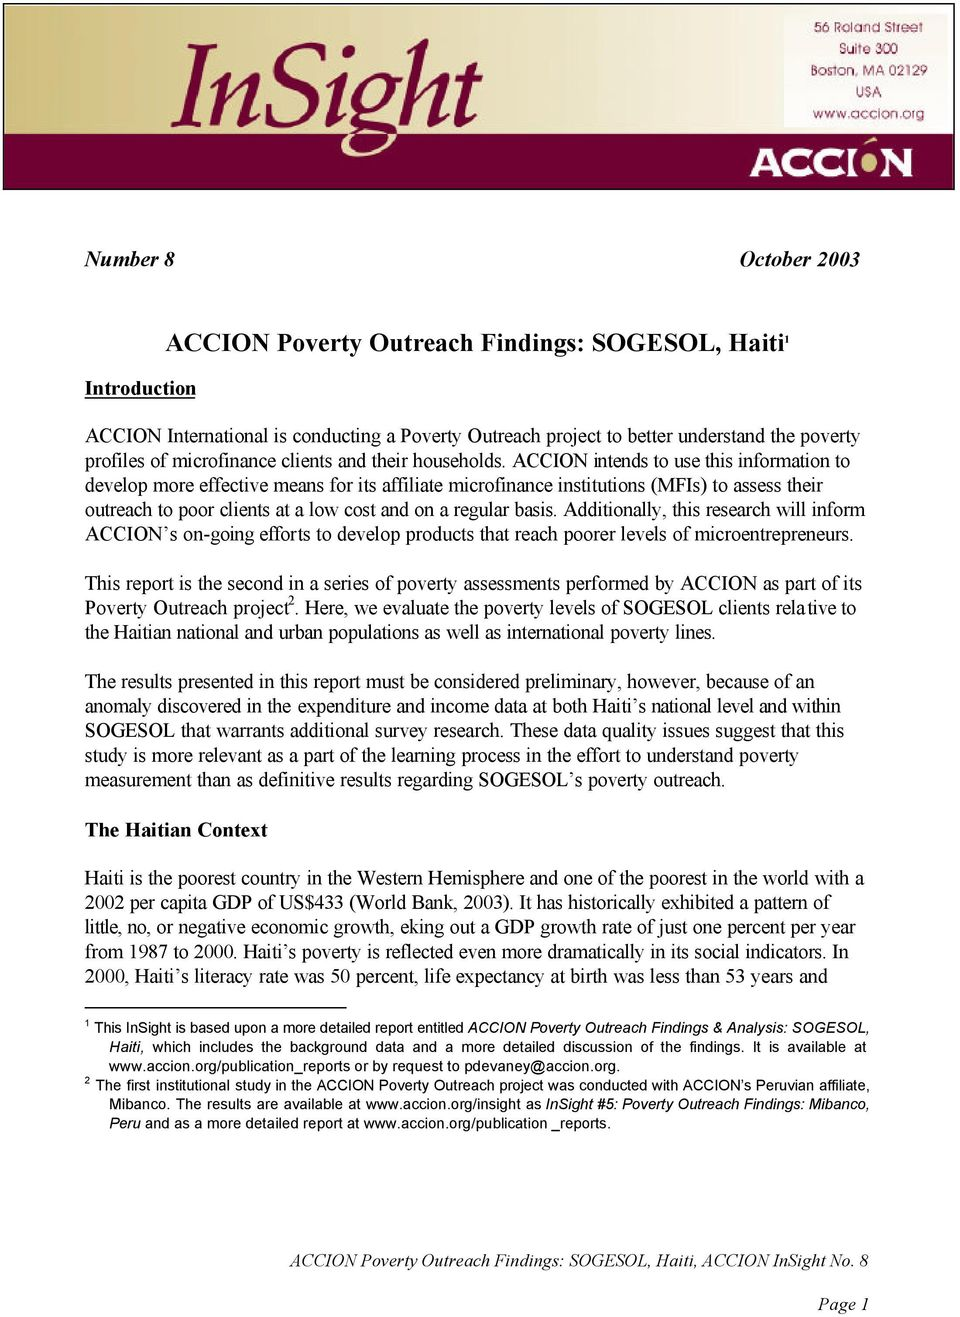 ACCION intends to use this information to develop more effective means for its affiliate microfinance institutions (MFIs) to assess their outreach to poor clients at a low cost and on a regular basis.